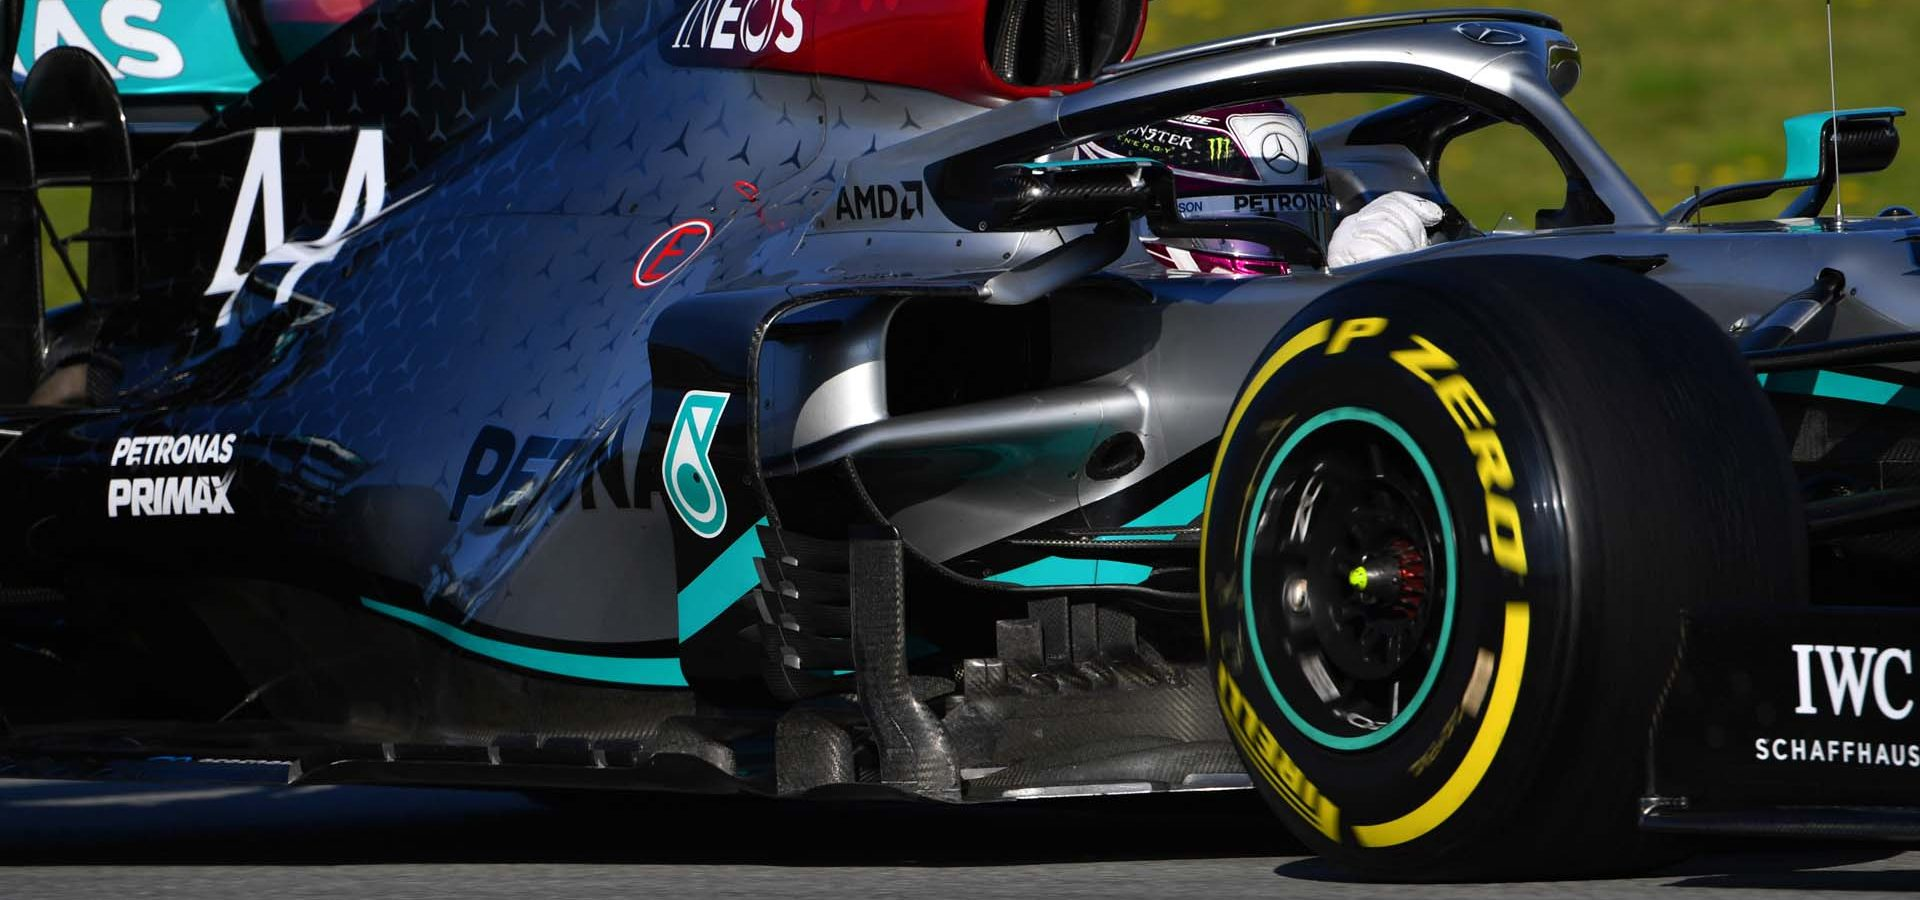 2020 Barcelona Pre-Season Test 2, Day 3 - LAT Images Lewis Hamilton Mercedes